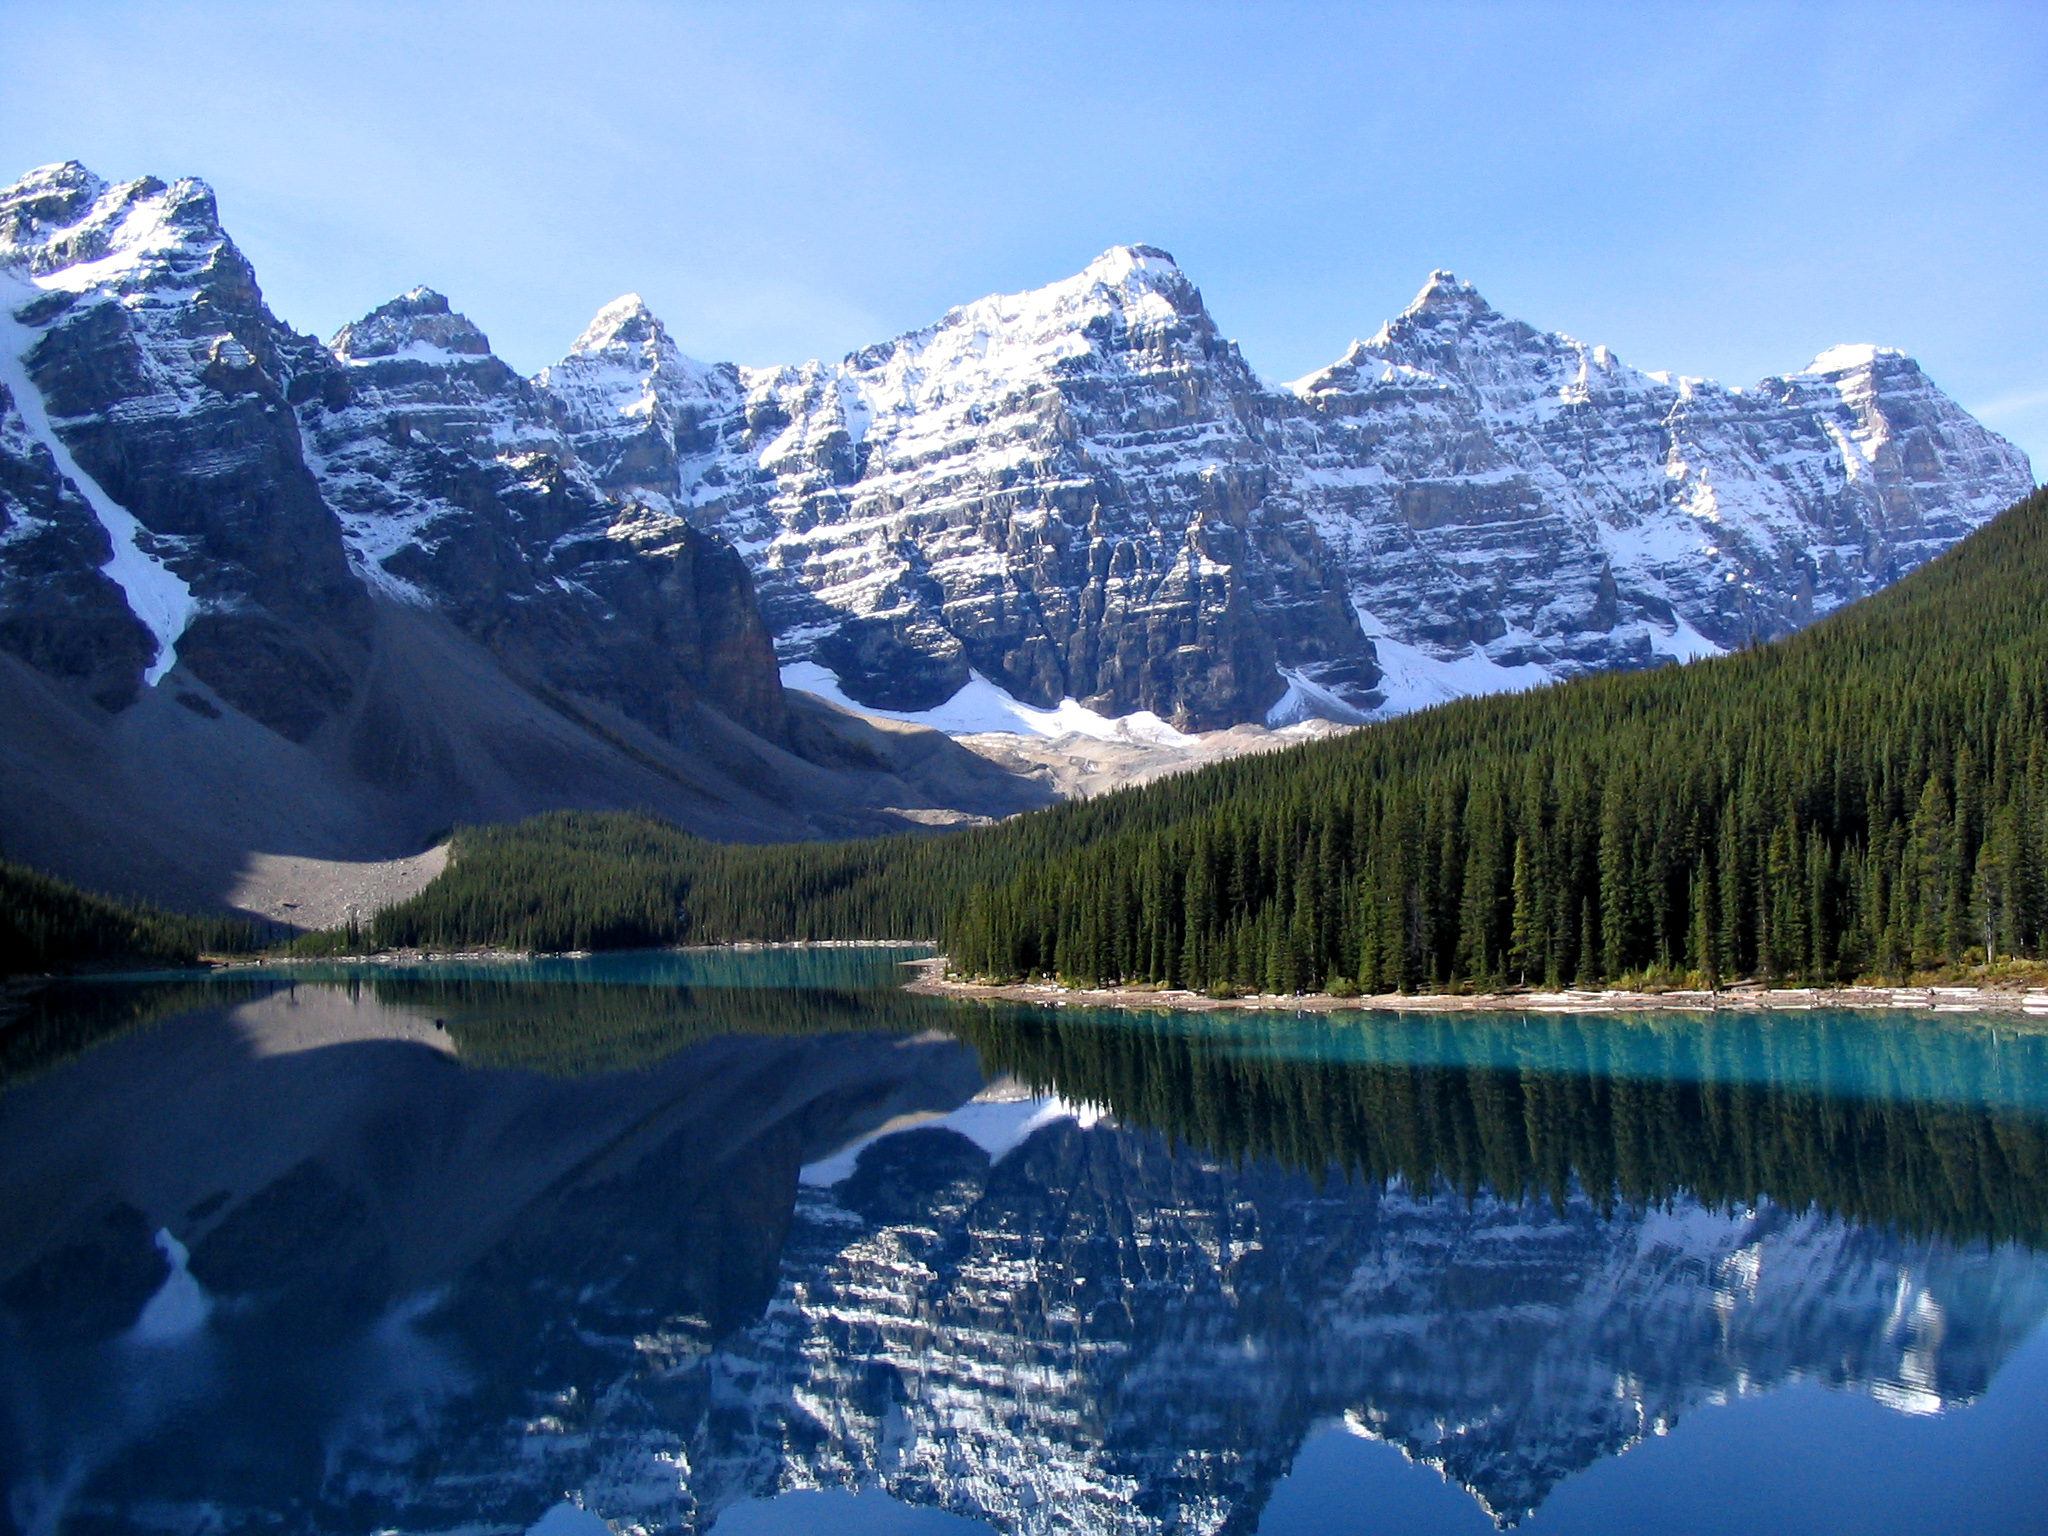 Valley of the Ten Peaks and Moraine Lake, Banff National Park, Canada. Photo by Gorgo / Wikimedia Commons.